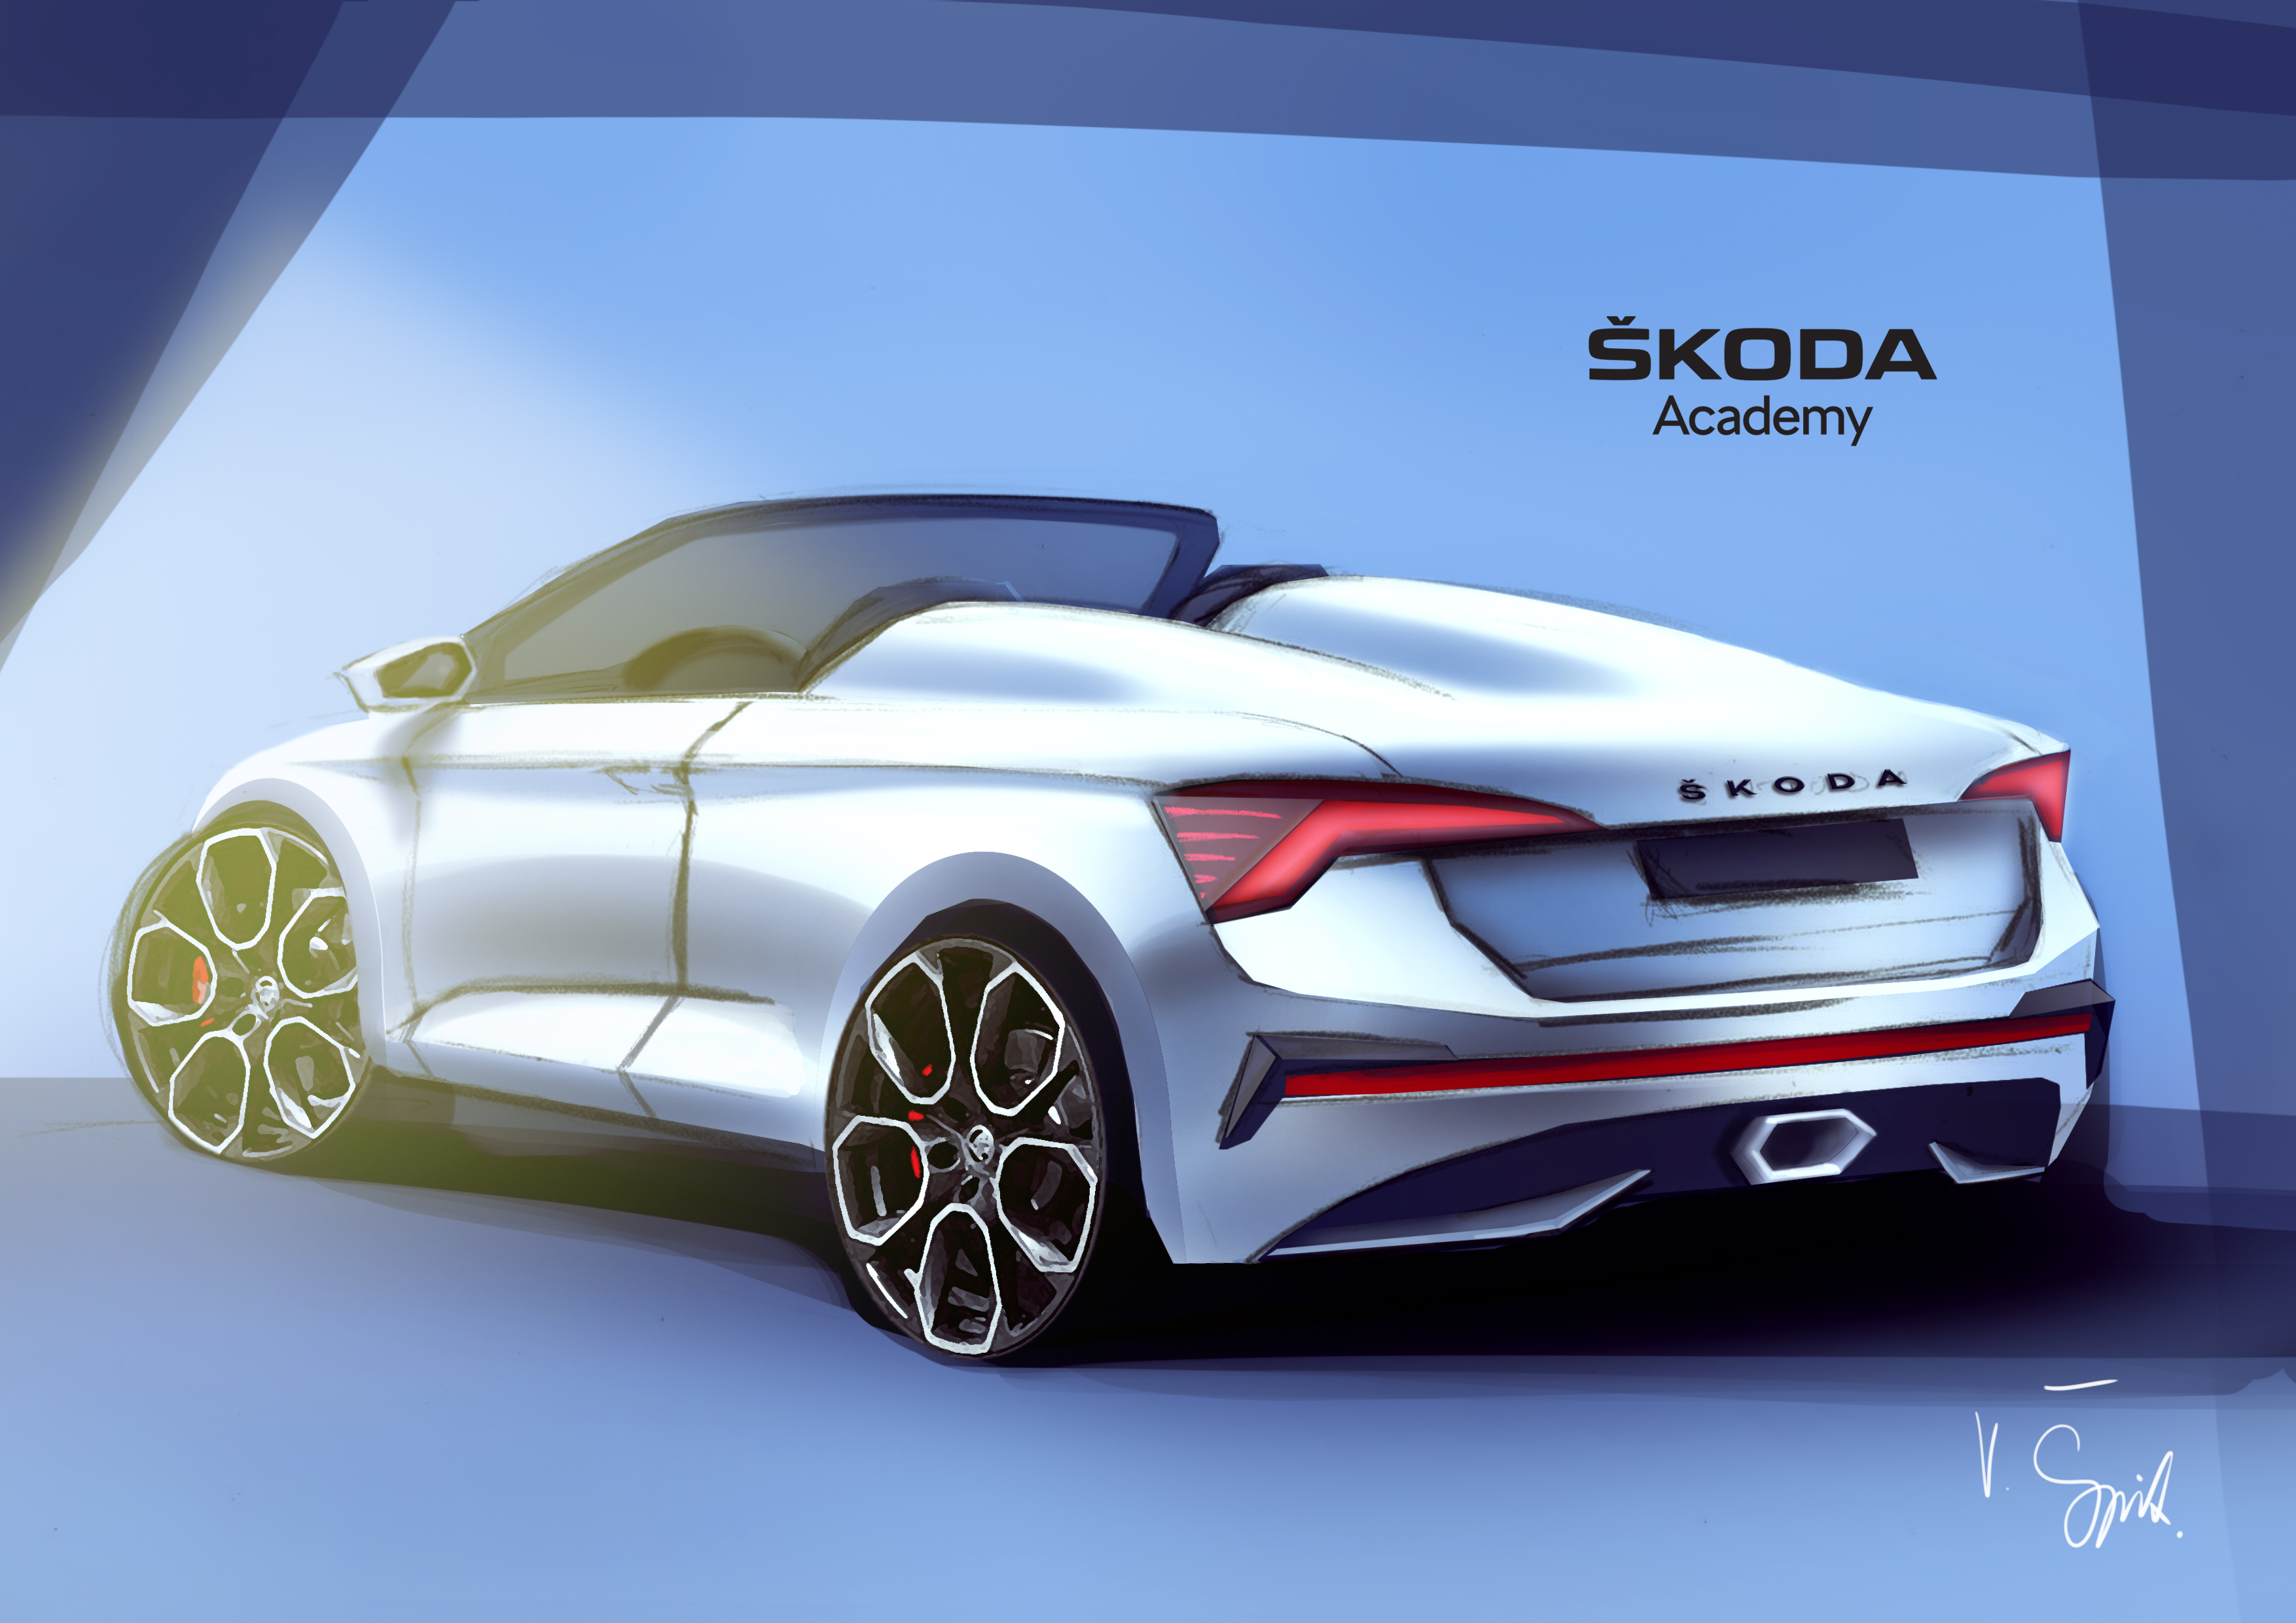 Seventh SKODA Student Concept Car is taking shape: Students are working on a Spider variant of the SKODA SCALA - Image 6